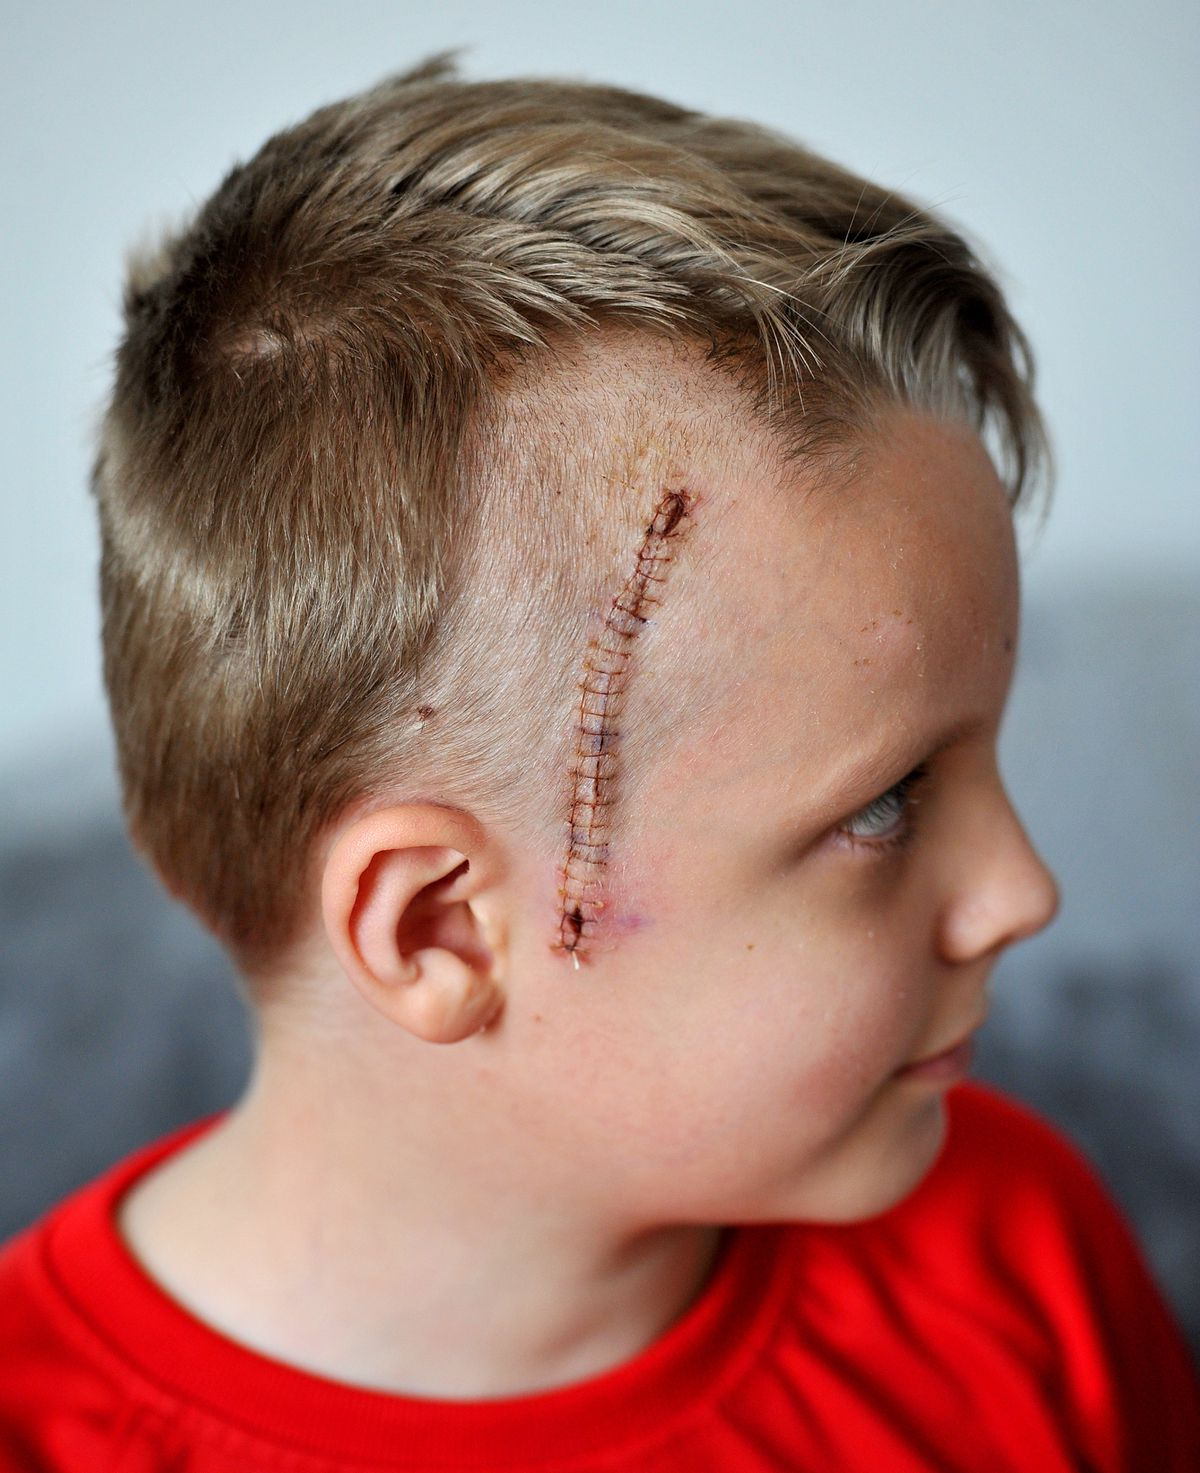 Archie had to have surgery and 23 stitches on his head